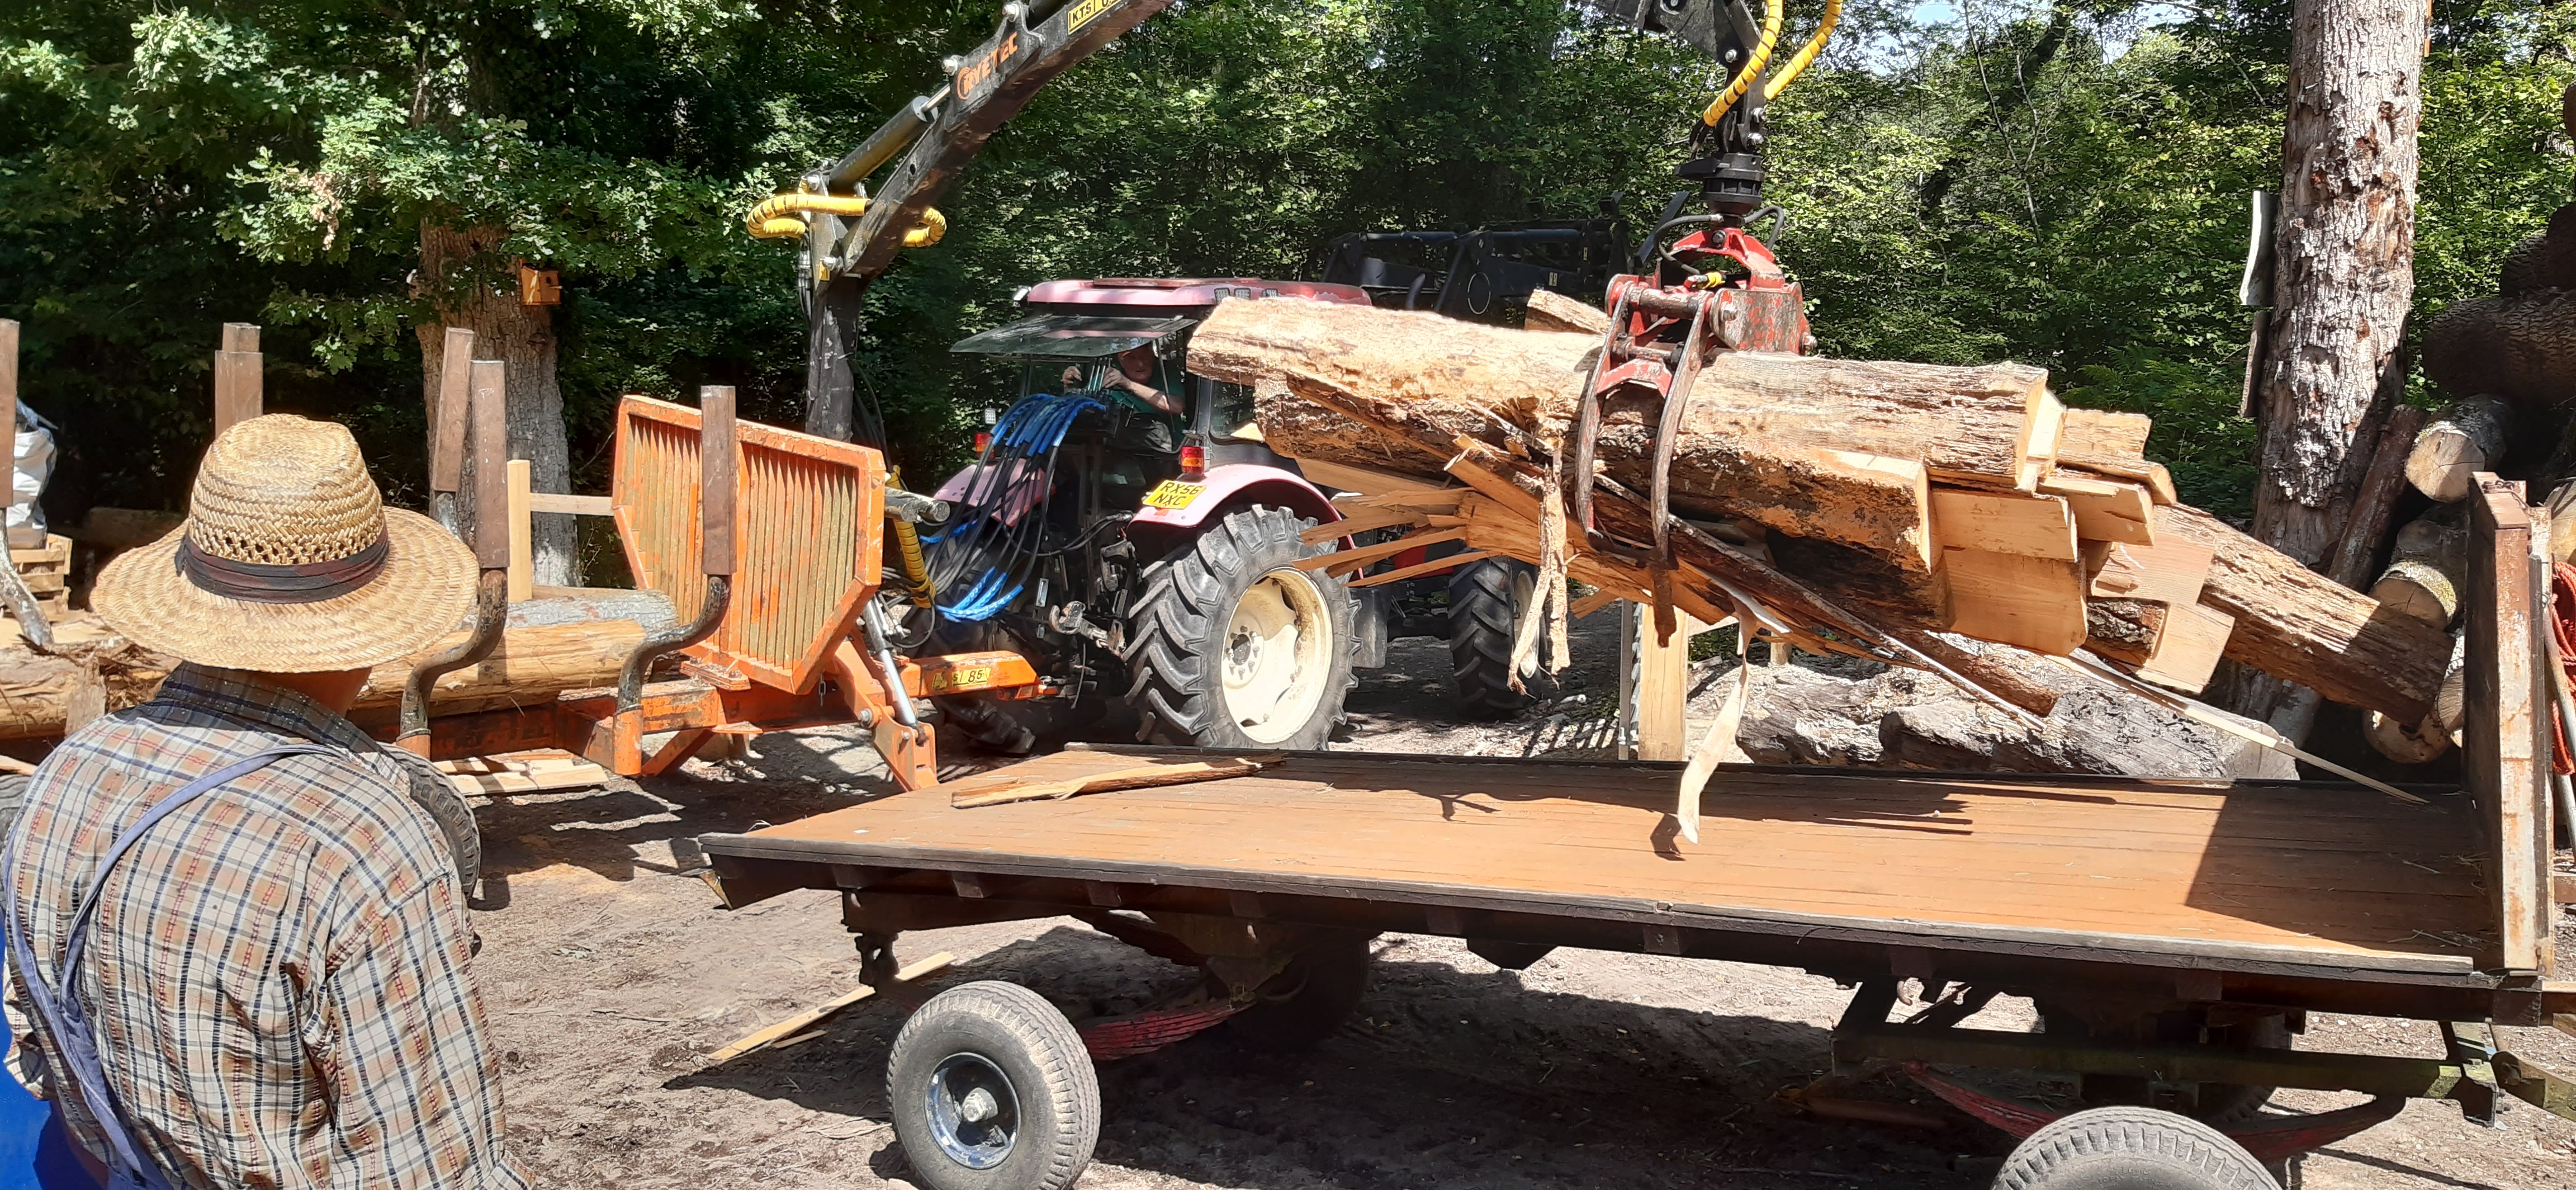 The first load being dropped on to the trailer